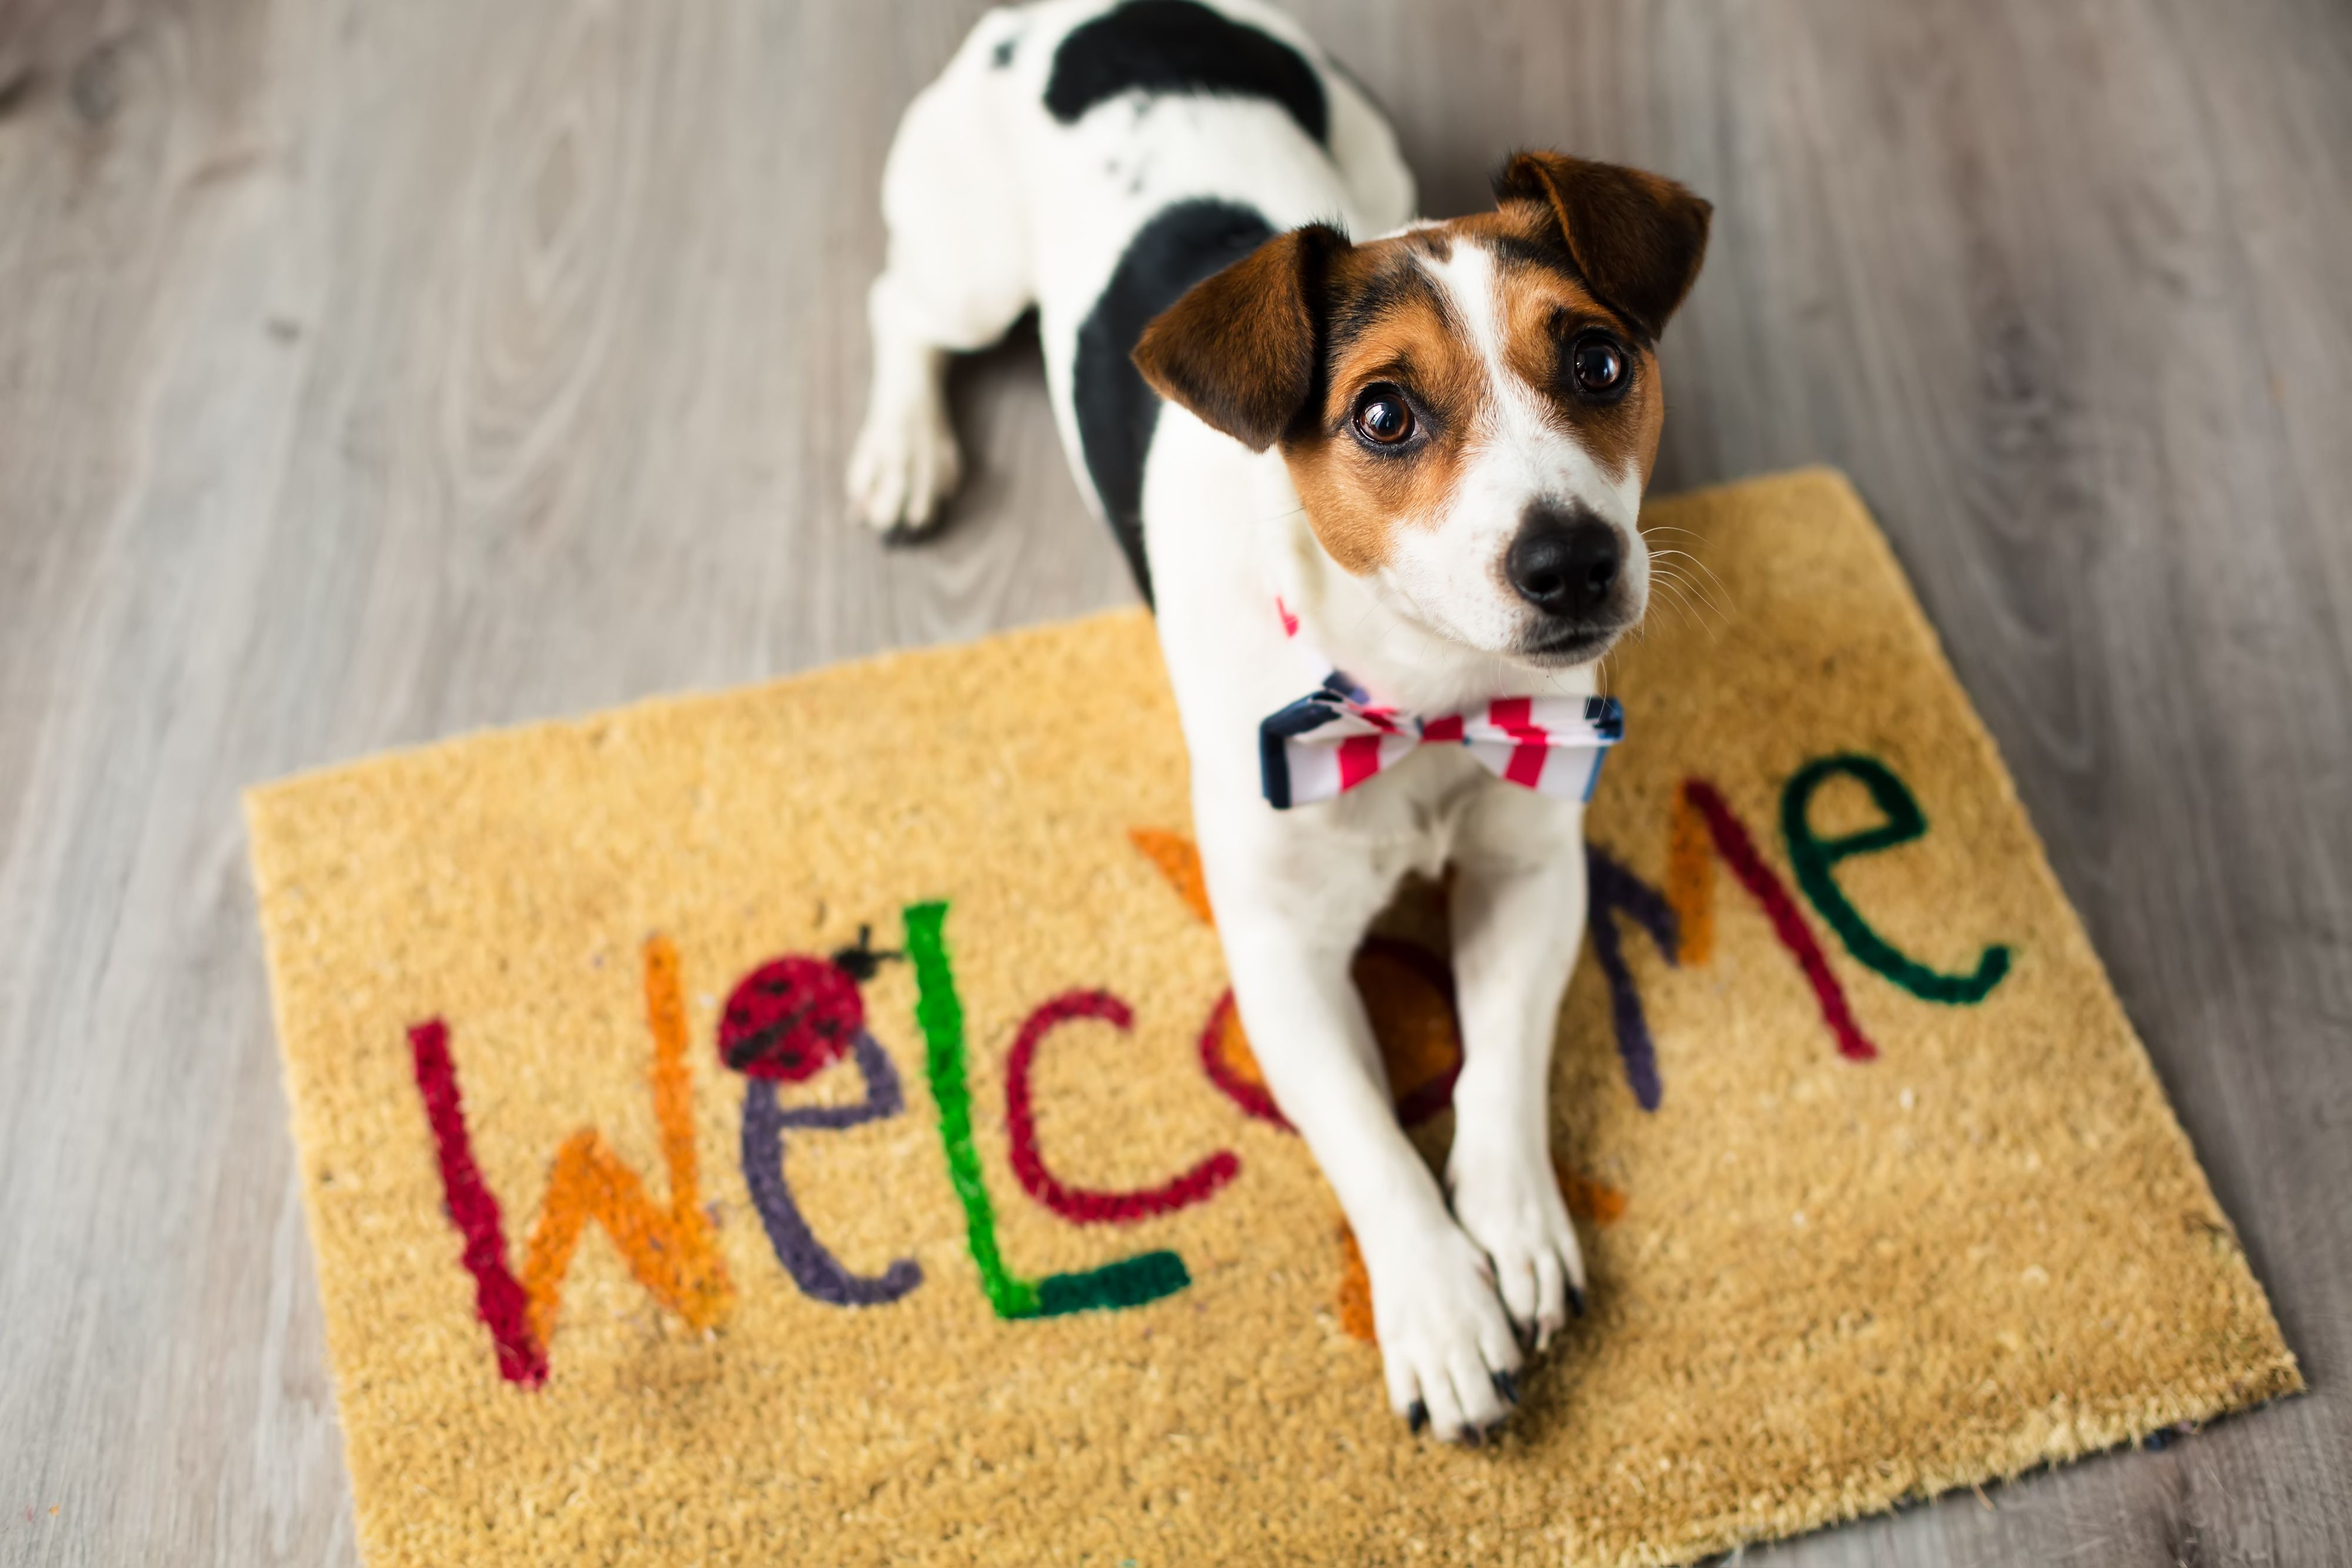 The Pet Friendly Home Dog Friends Dogs Shelter Dogs